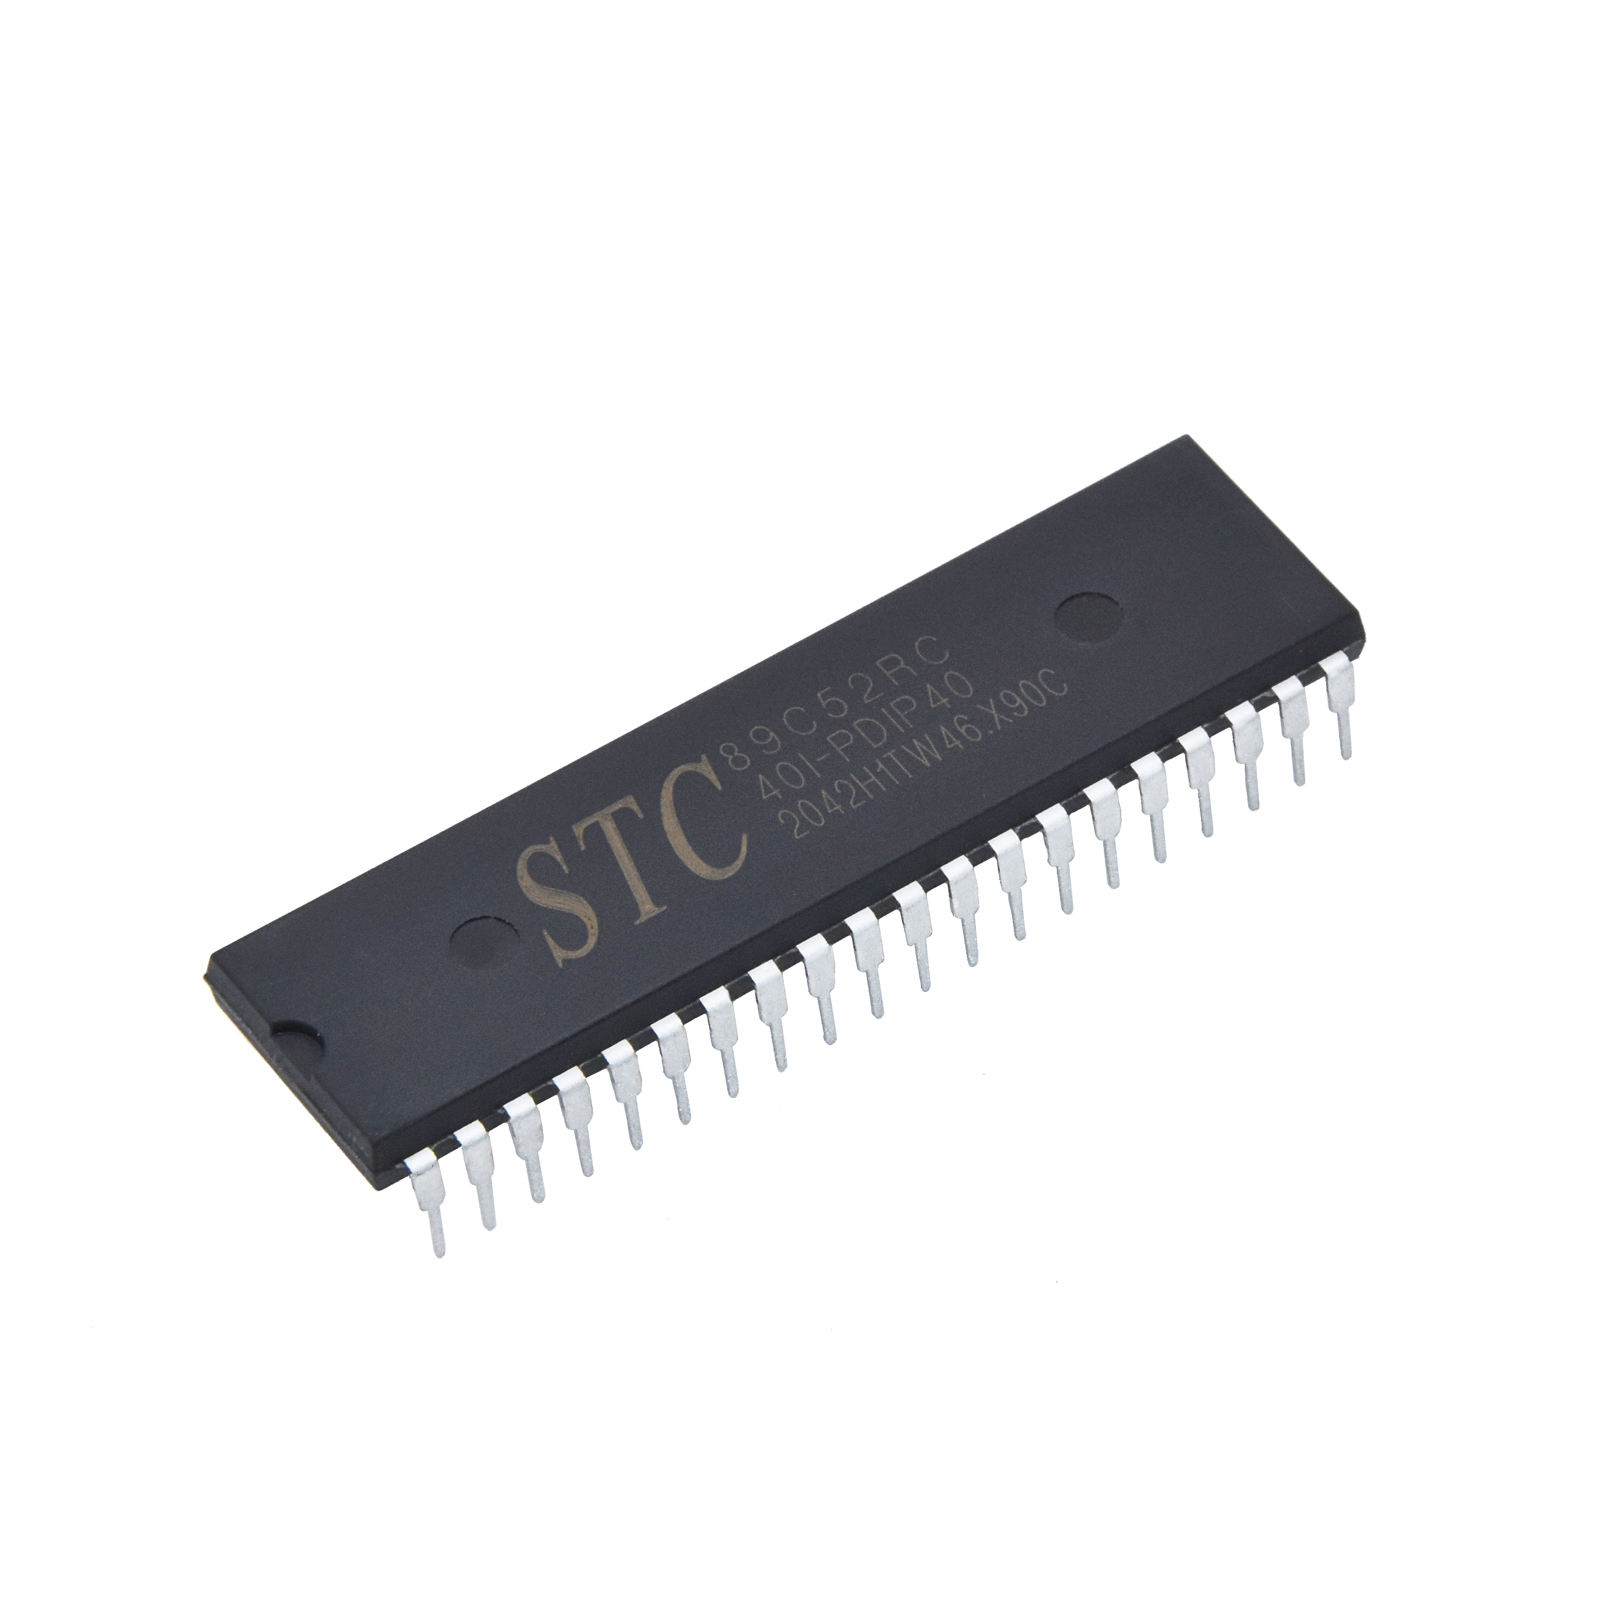 Programmer Microcontroller At89s52-24pu Mcu Inline Dip40 Ic Chip At89s52